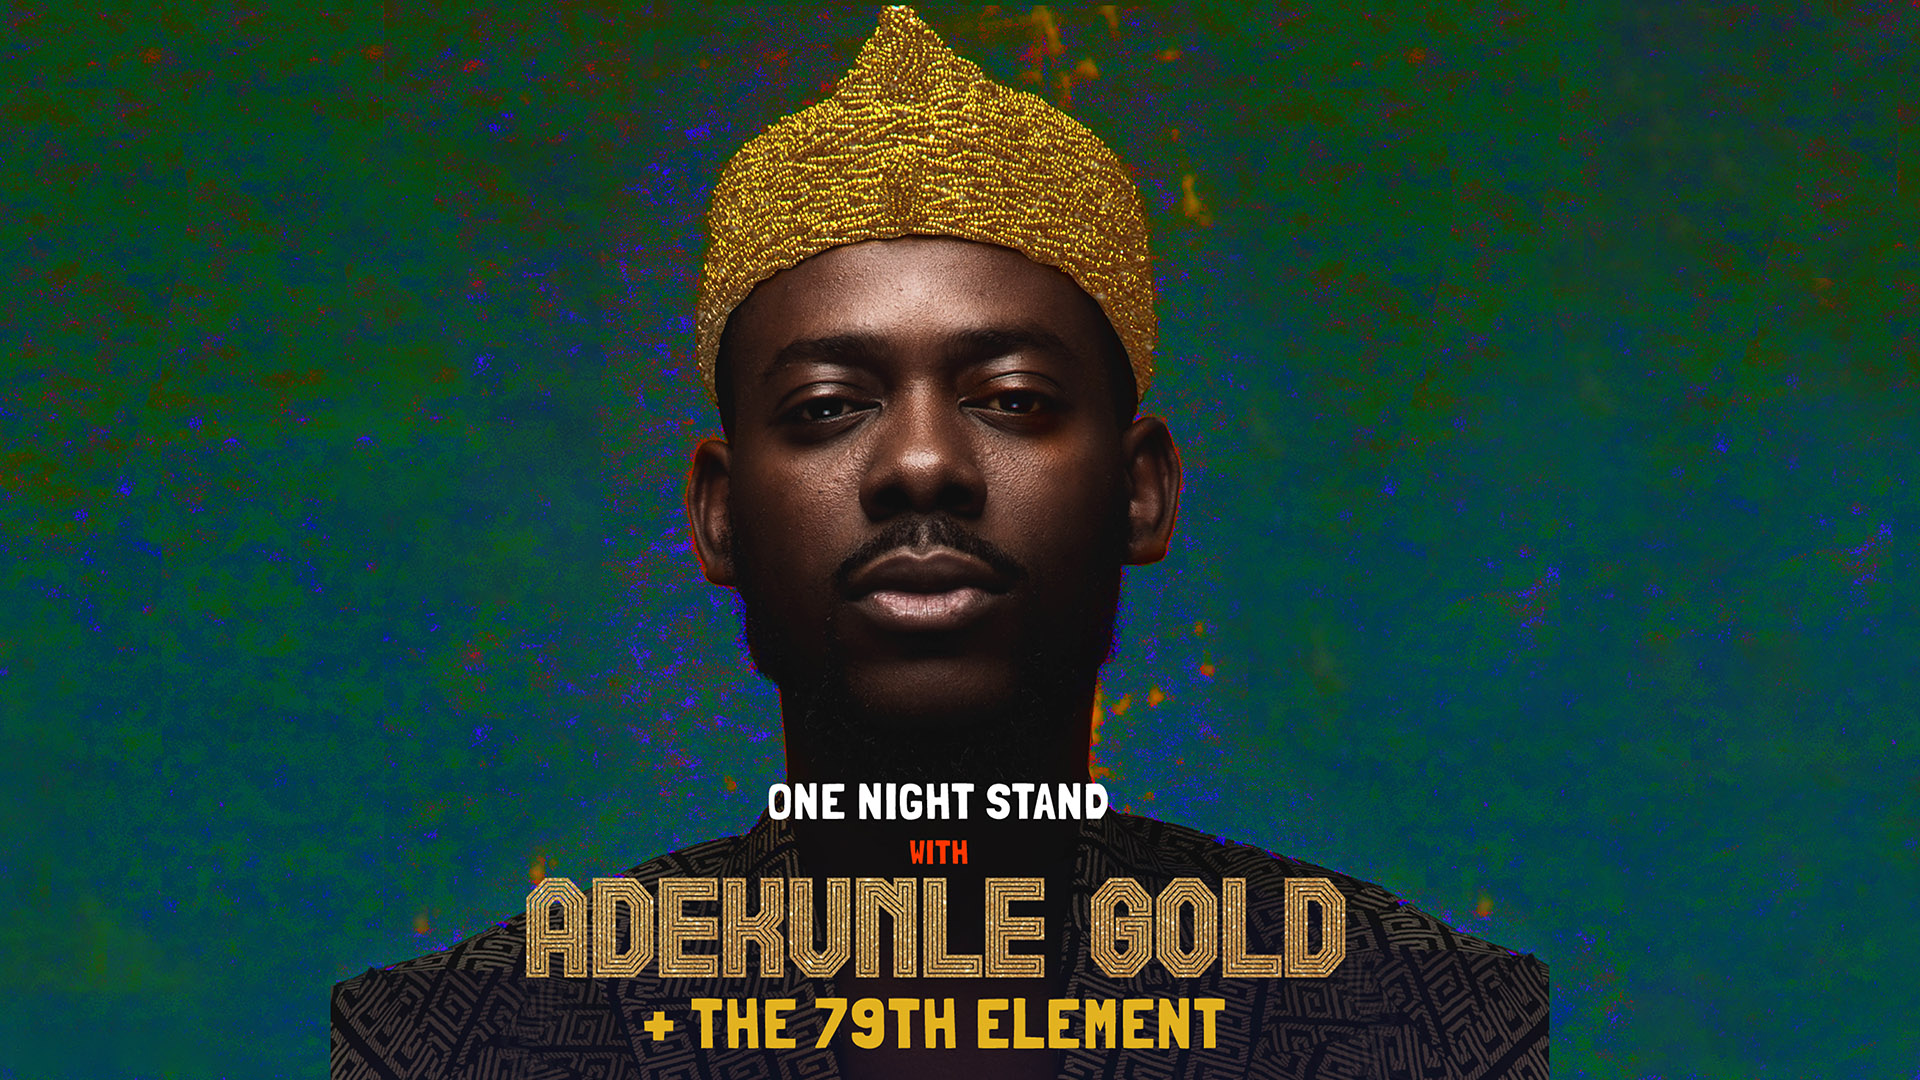 Adekunle Gold One Night Stand